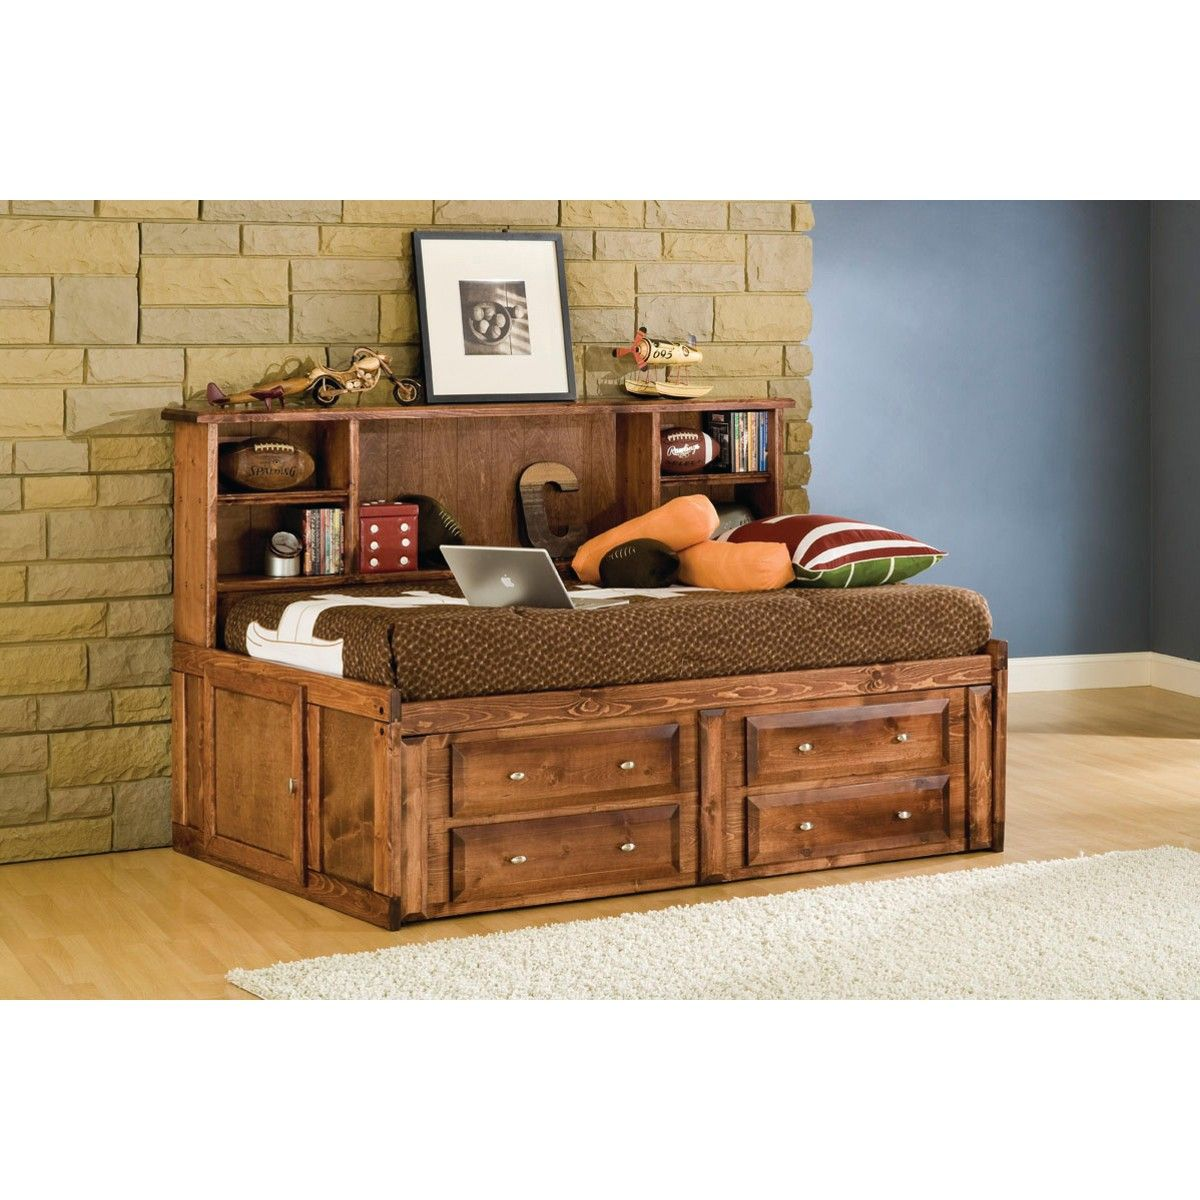 conns bedroom furniture. Visions Studio Bedroom  Bed Underdresser Twin Cocoa 4315 Conn s